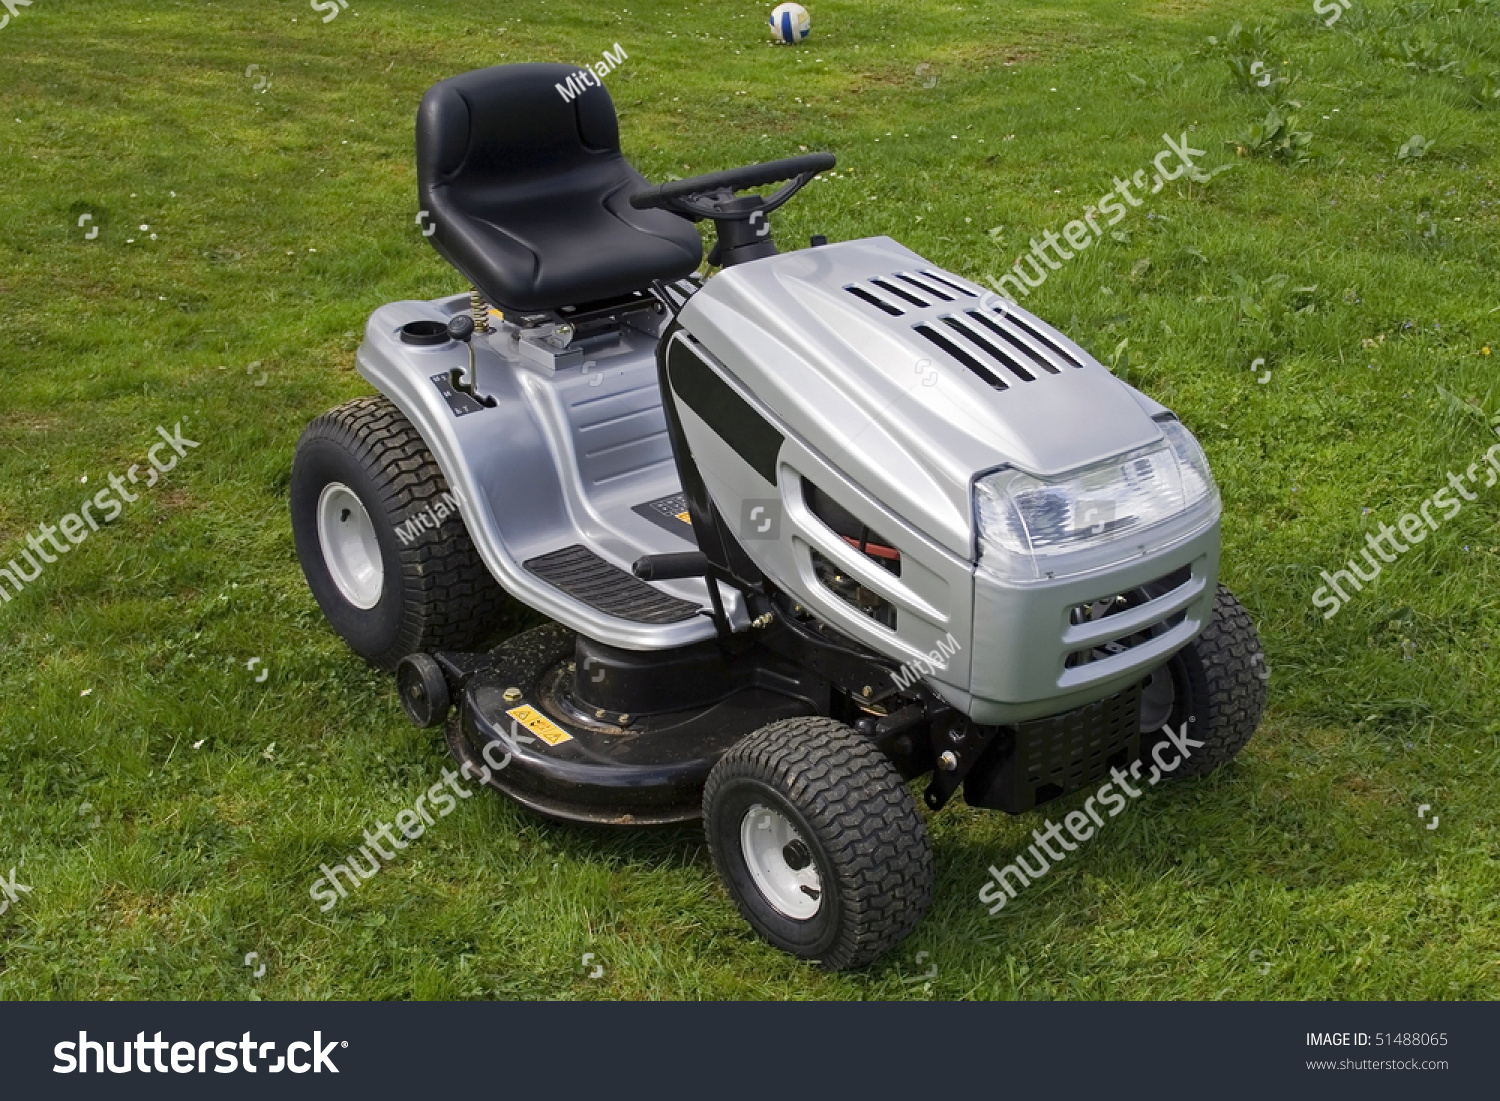 small tractor for cutting grass all logos removed warning signs save to a lightbox